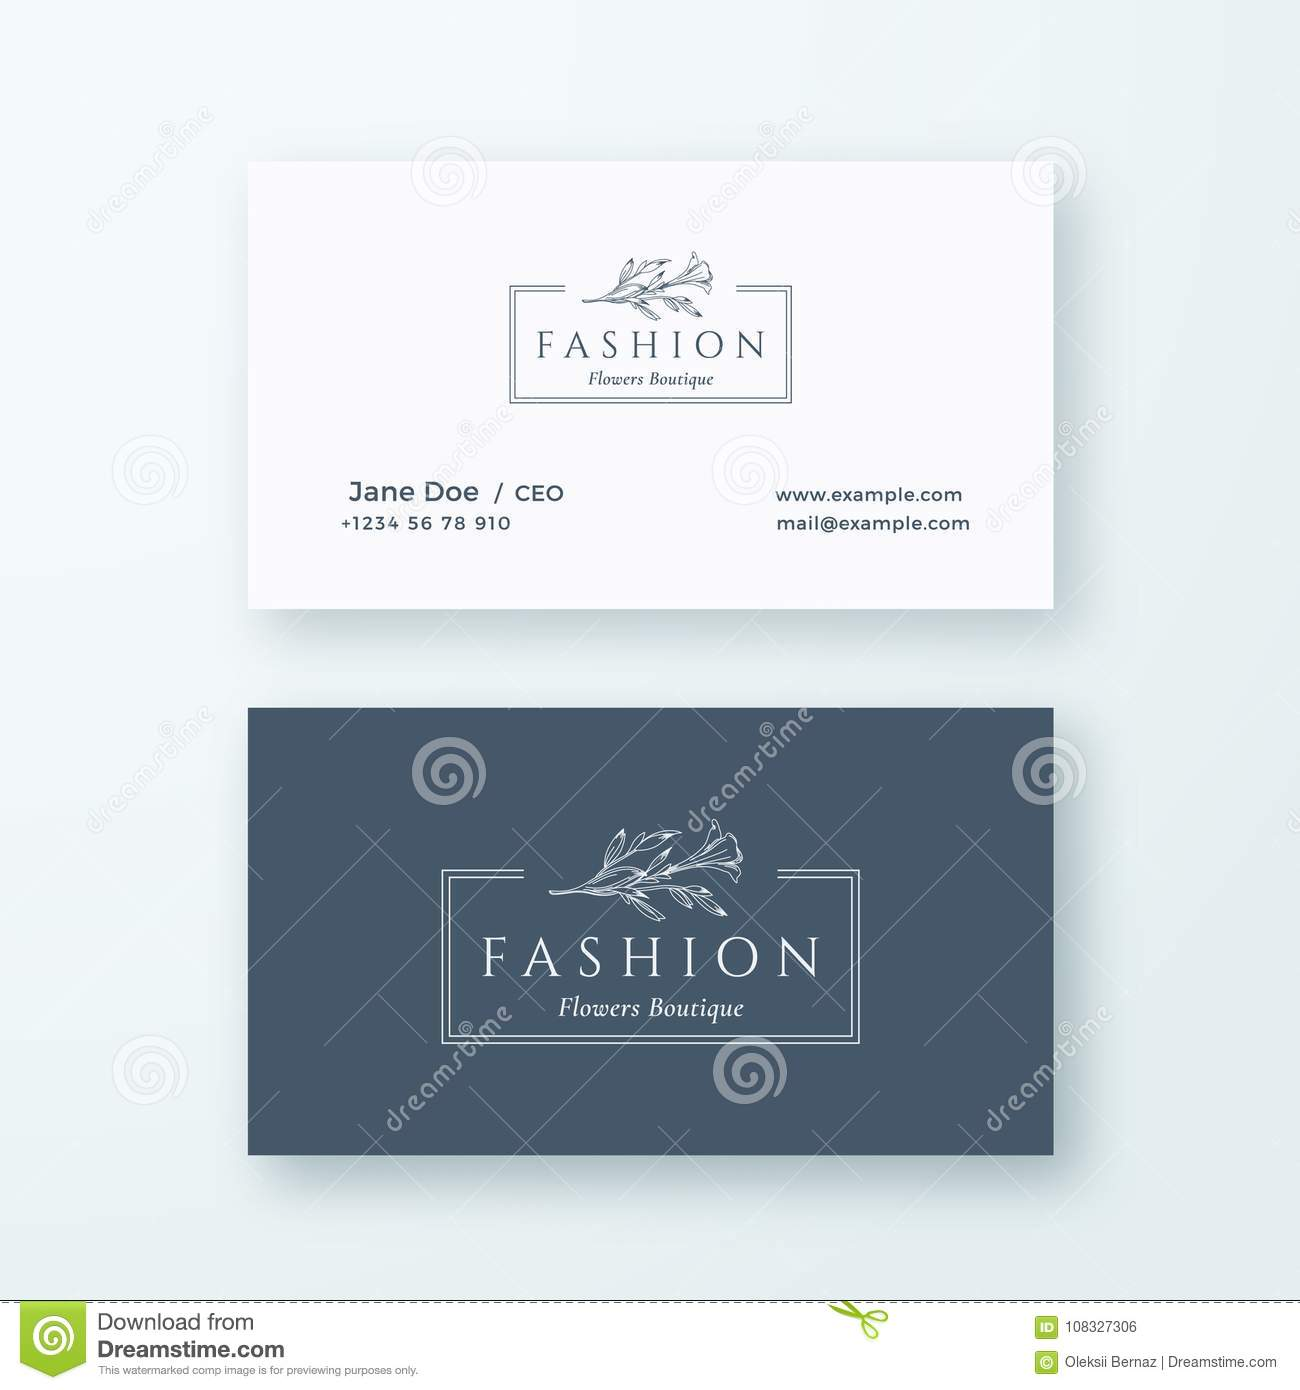 Abstract Fashion Vector Sign Or Logo And Business Card Template Premium Stationary Realistic Mock Up Modern Typography Stock Vector Illustration Of Classy Elegant 108327306